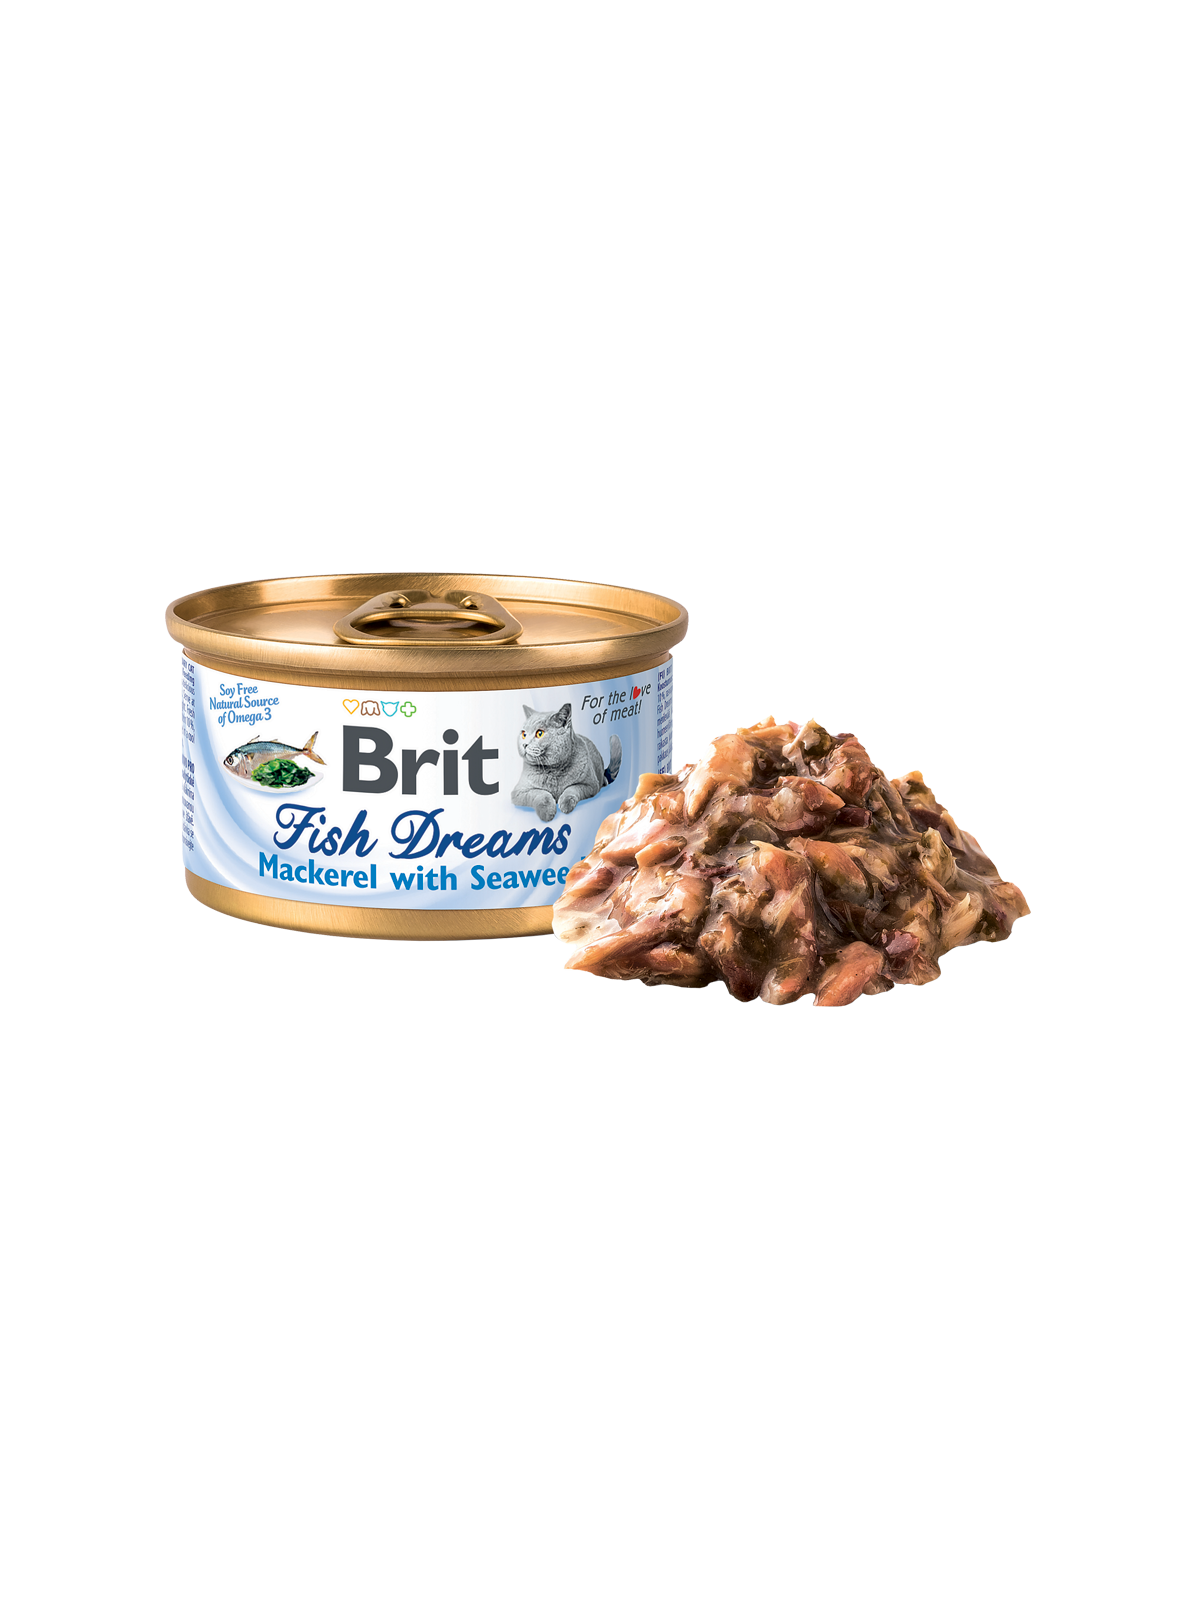 Brit Fish Dreams Mackerel & Seaweed 80g